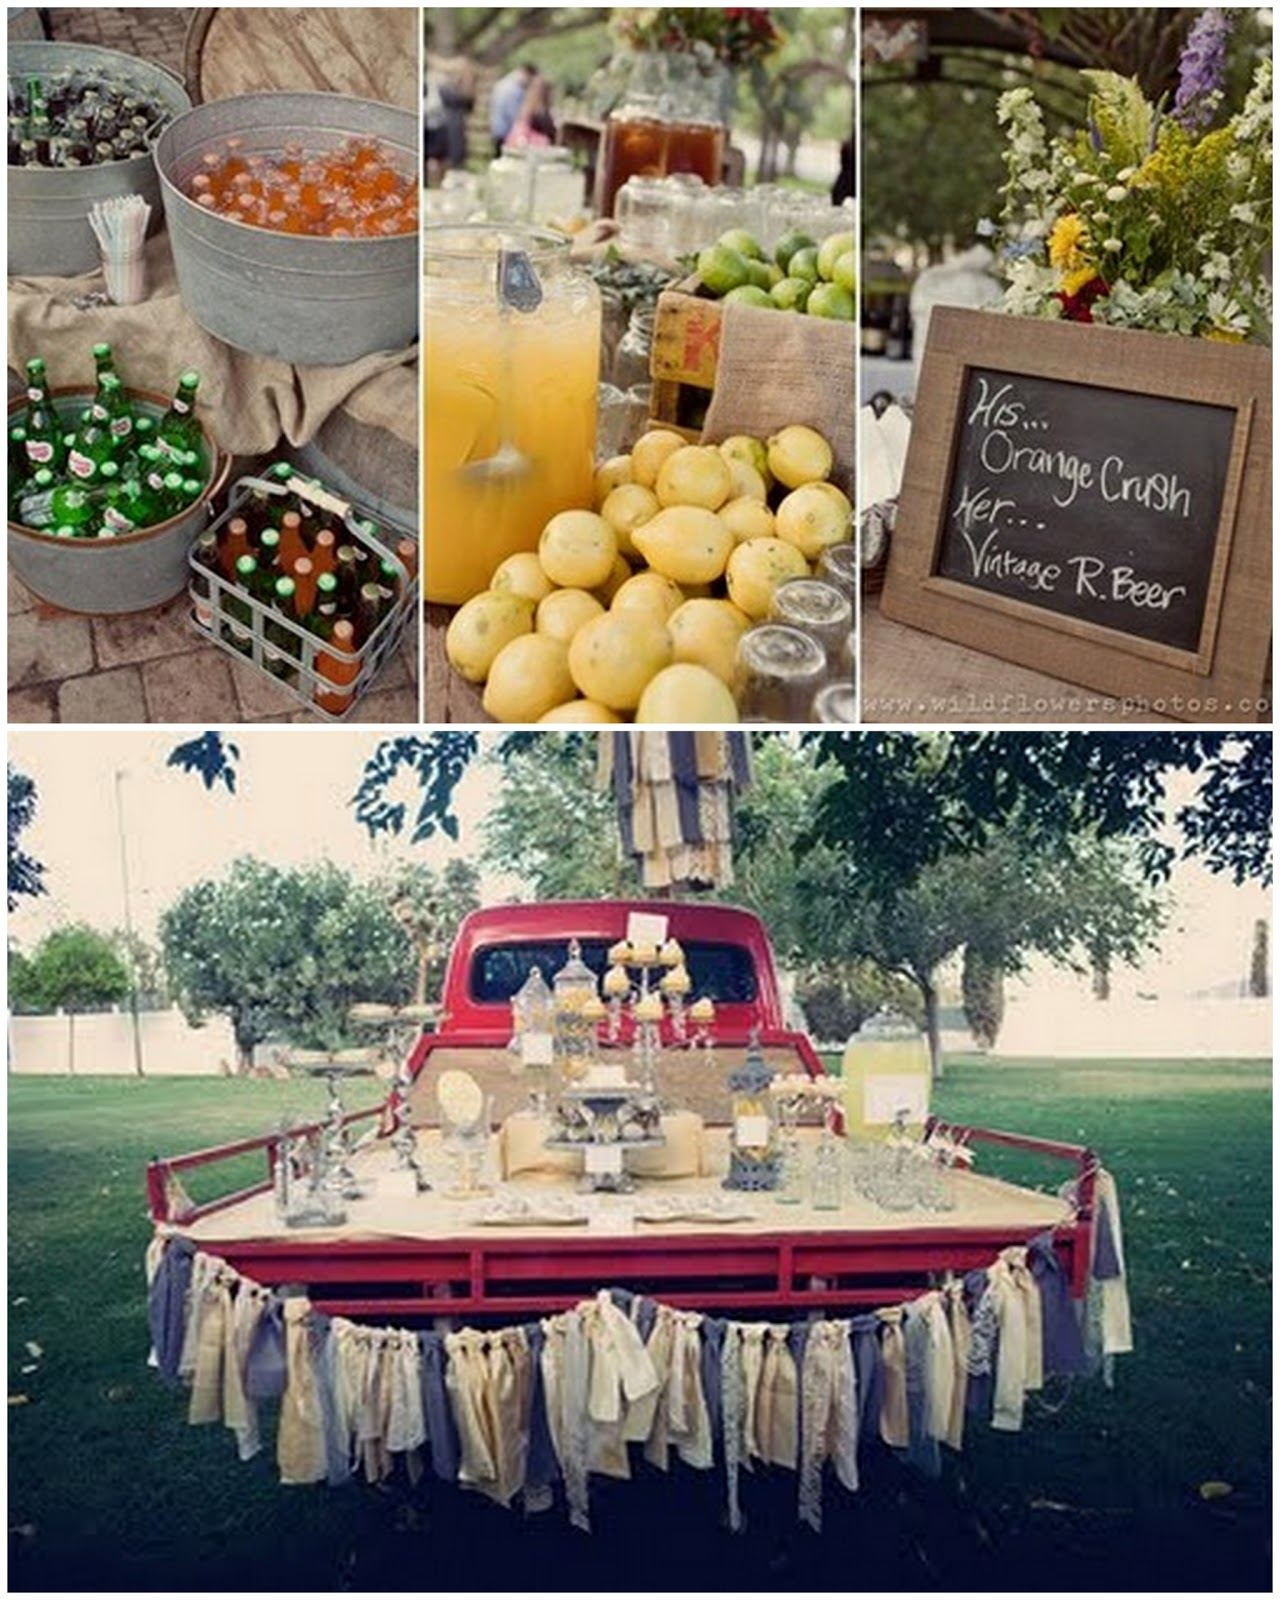 Wedding Drinks Ideas: Blue Mason Jar Studio: {Bright Idea Thursday} Signature Drinks